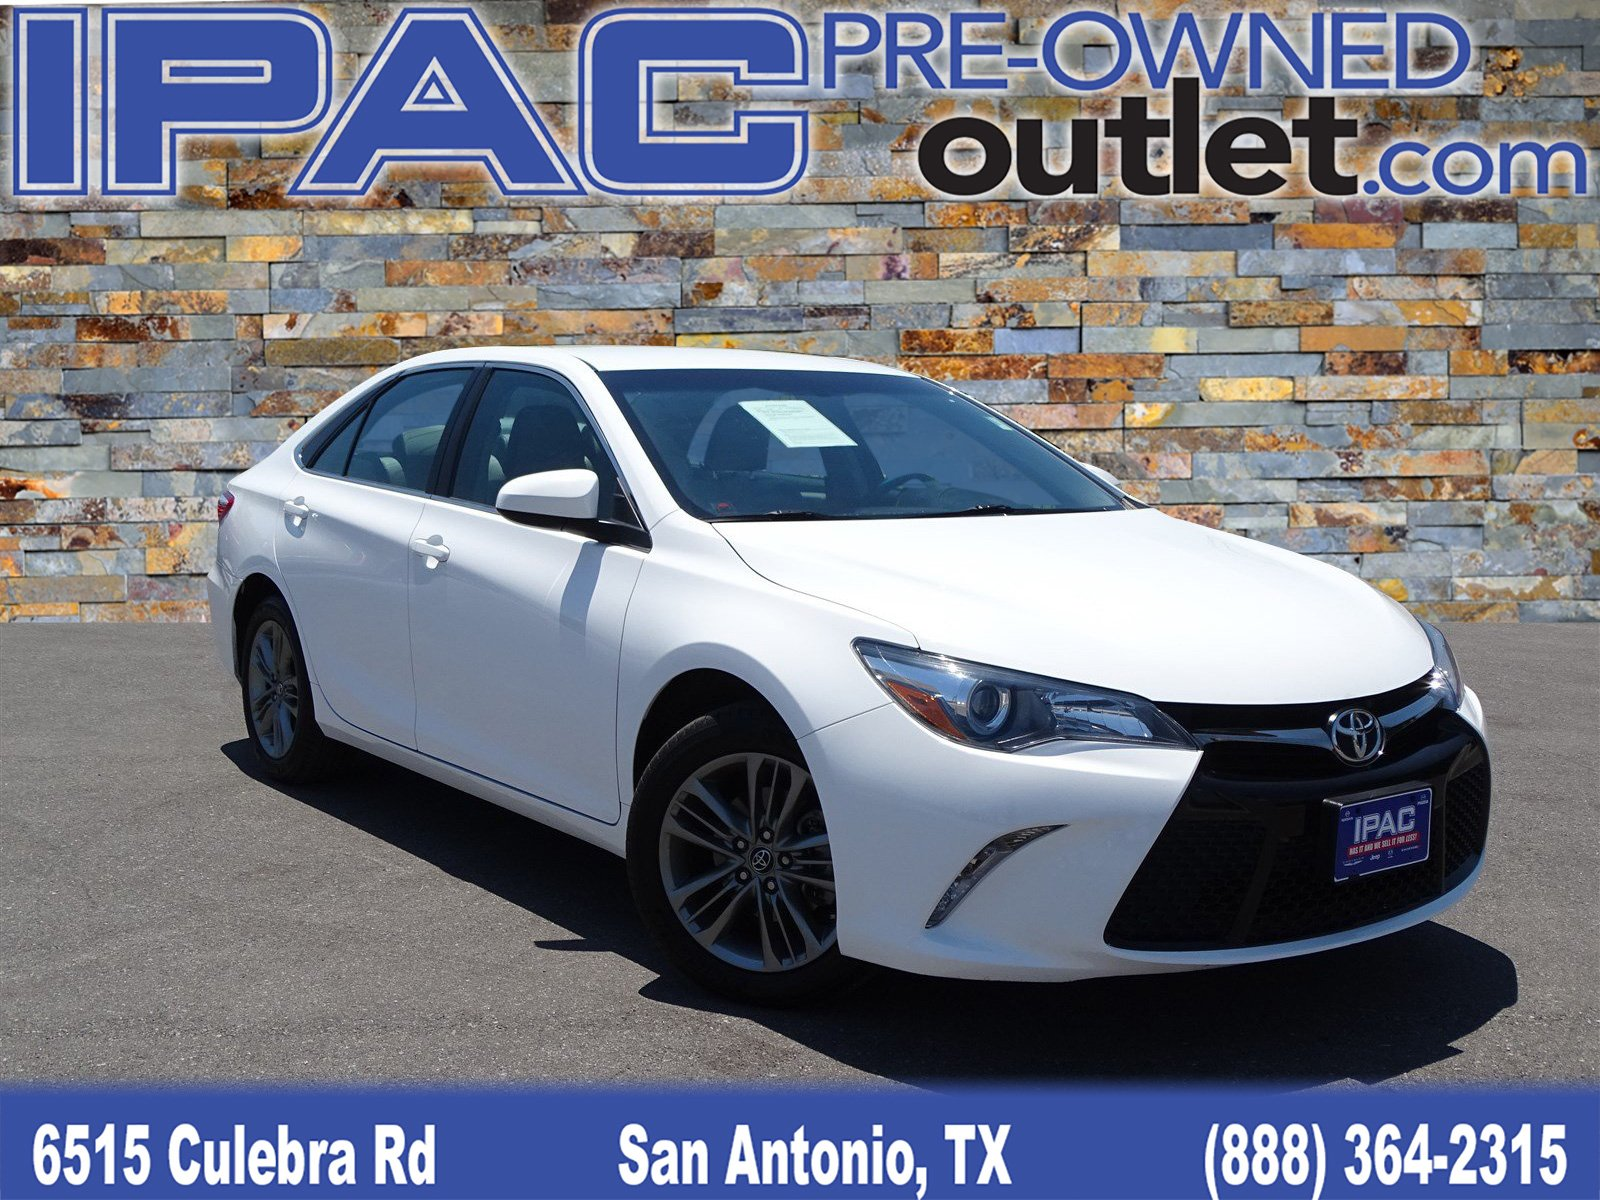 Pre Owned 2017 Toyota Camry SE Sedan in San Antonio P